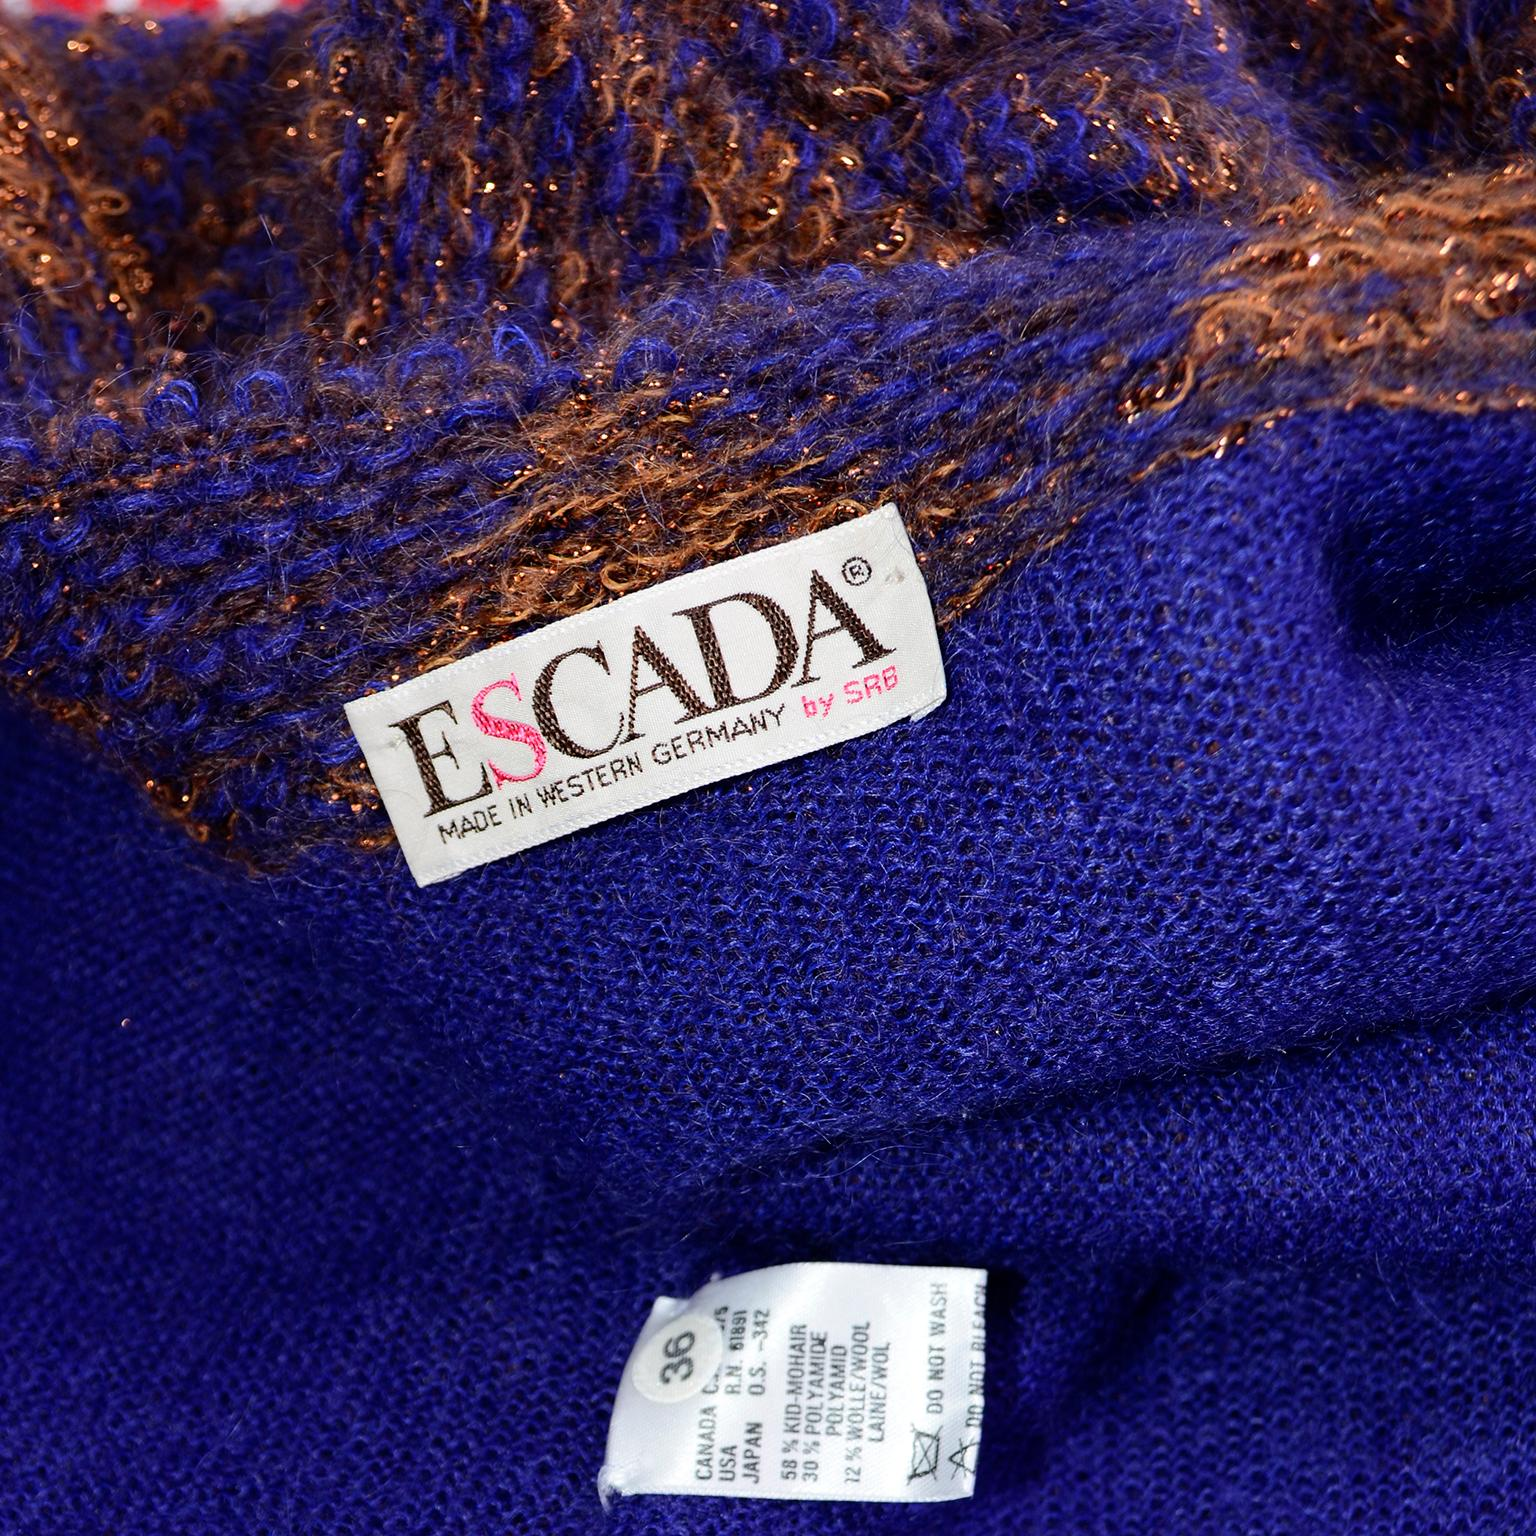 escada margaretha ley vintage blue & copper mohair wool long cardigan sweater  wolle blends c 2_15 #15